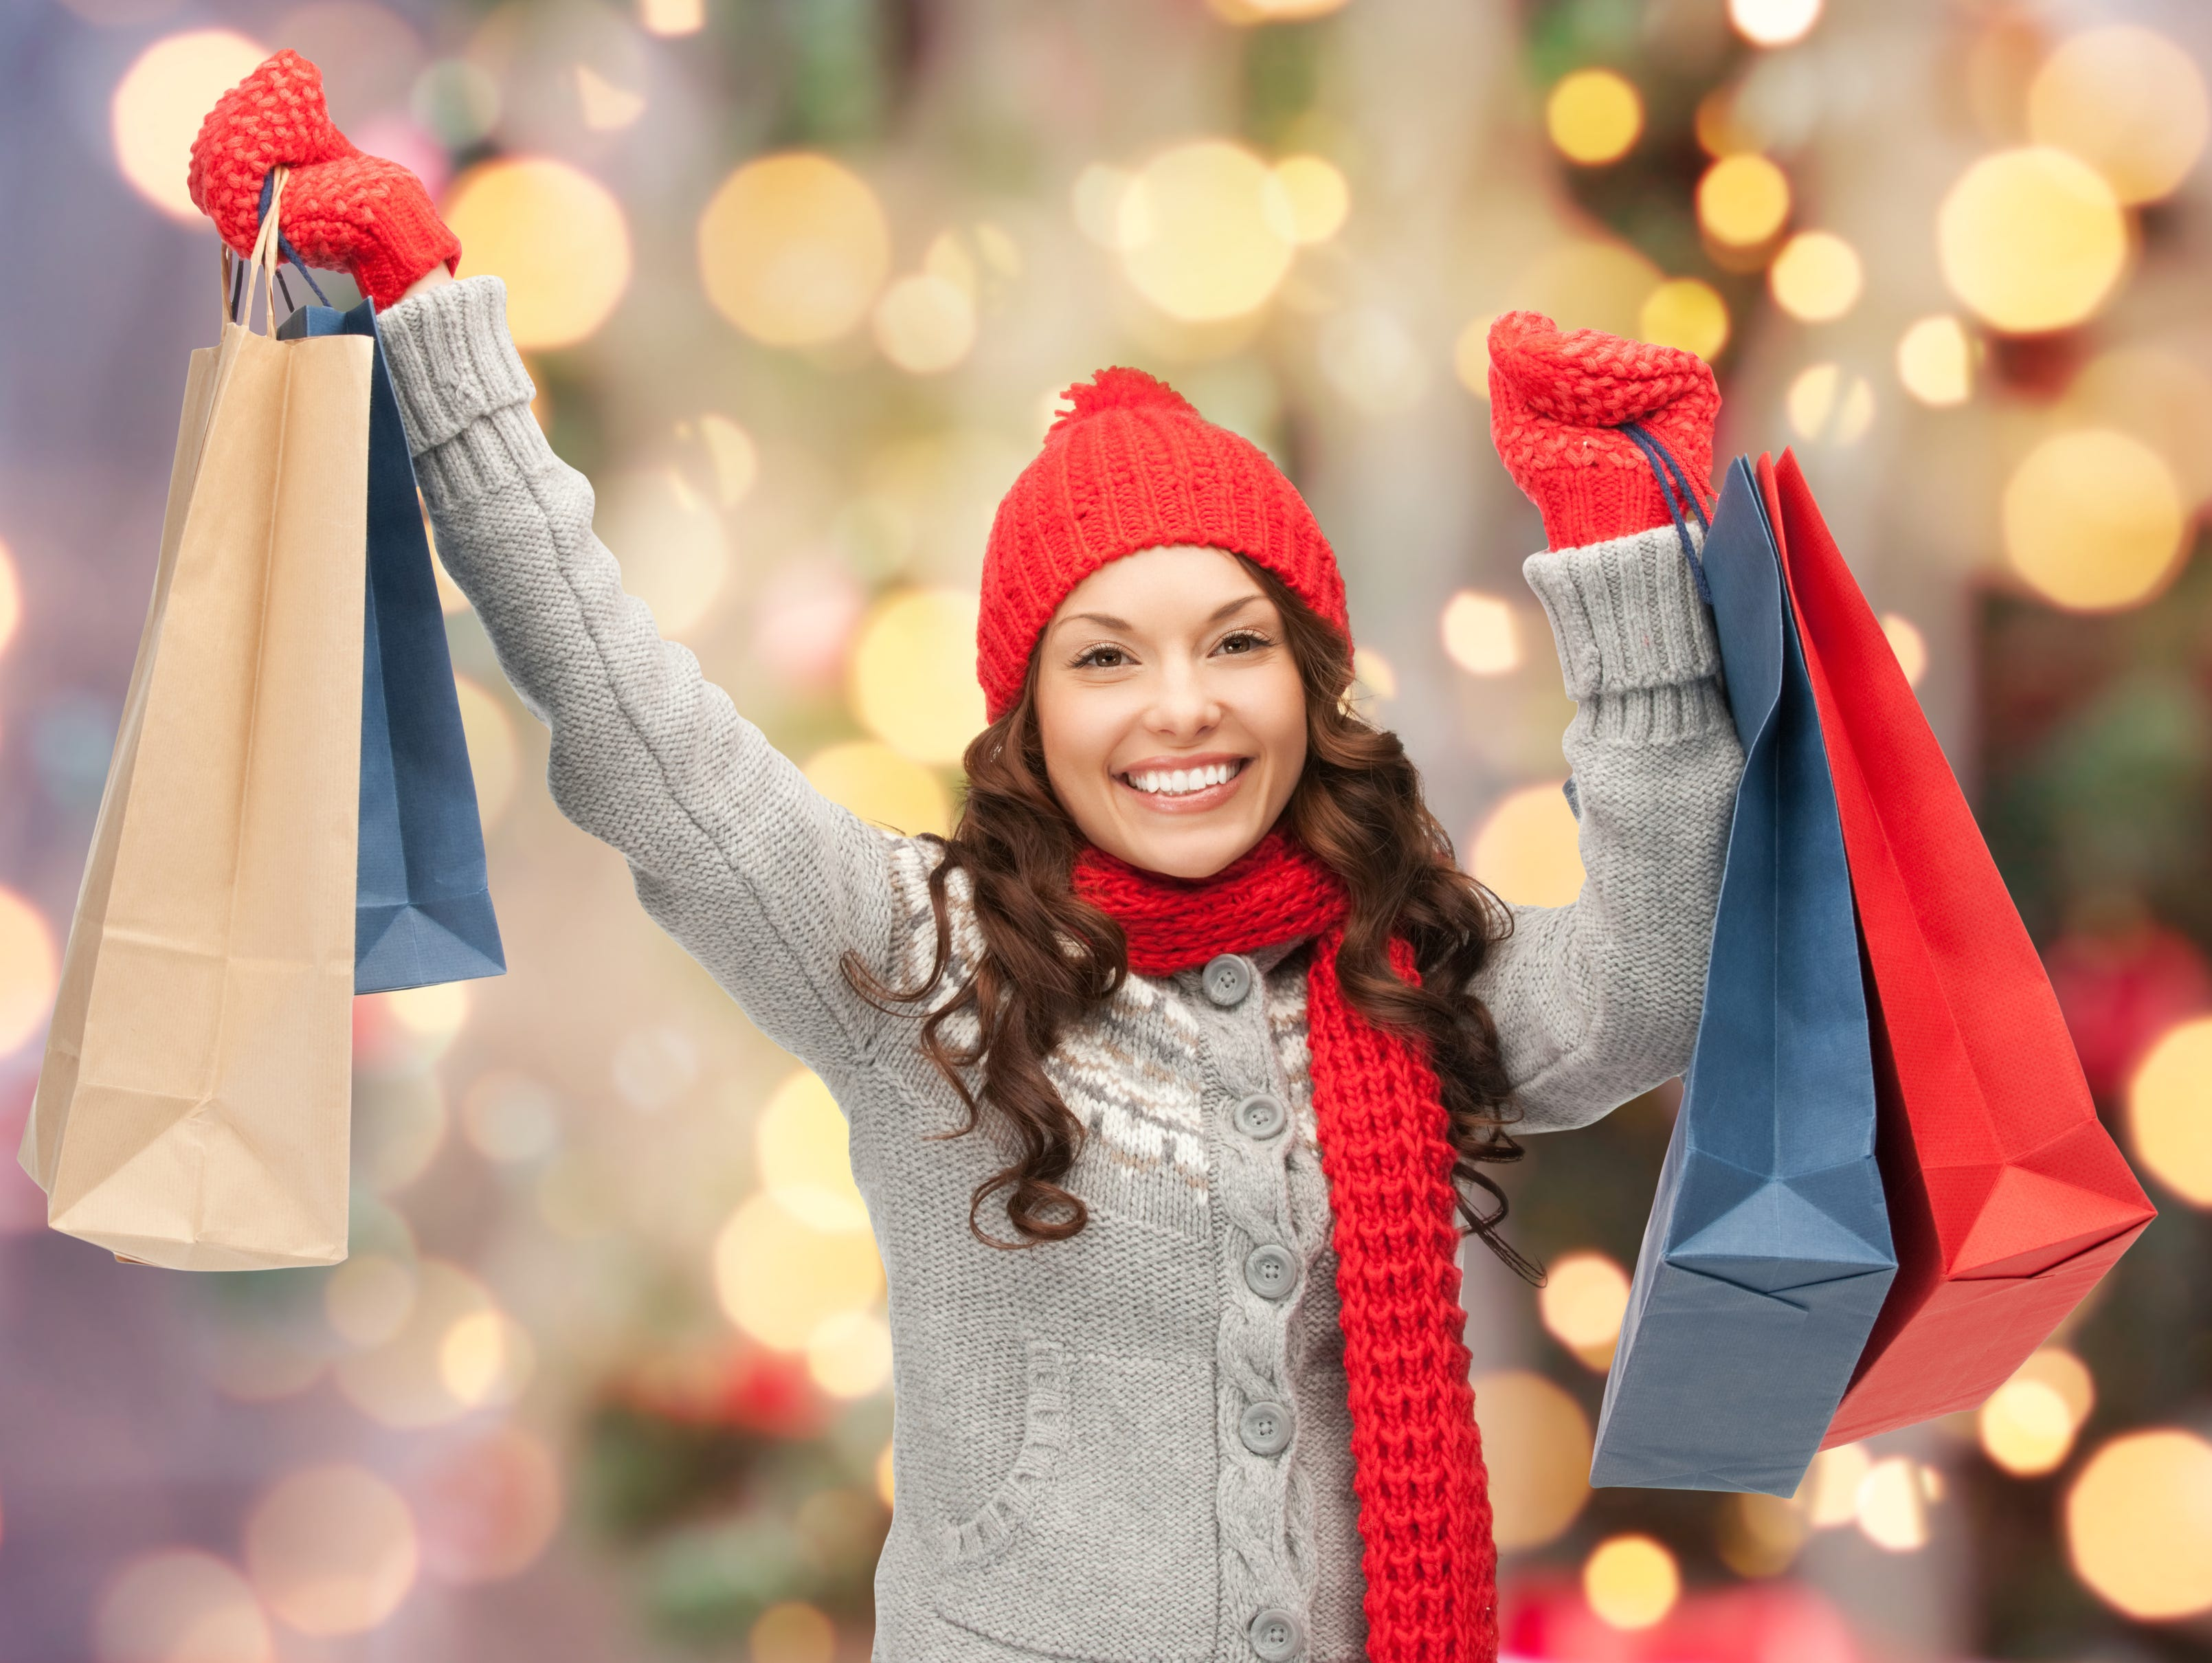 One lucky Insider will win a $250 Visa gift card to help with holiday shopping!